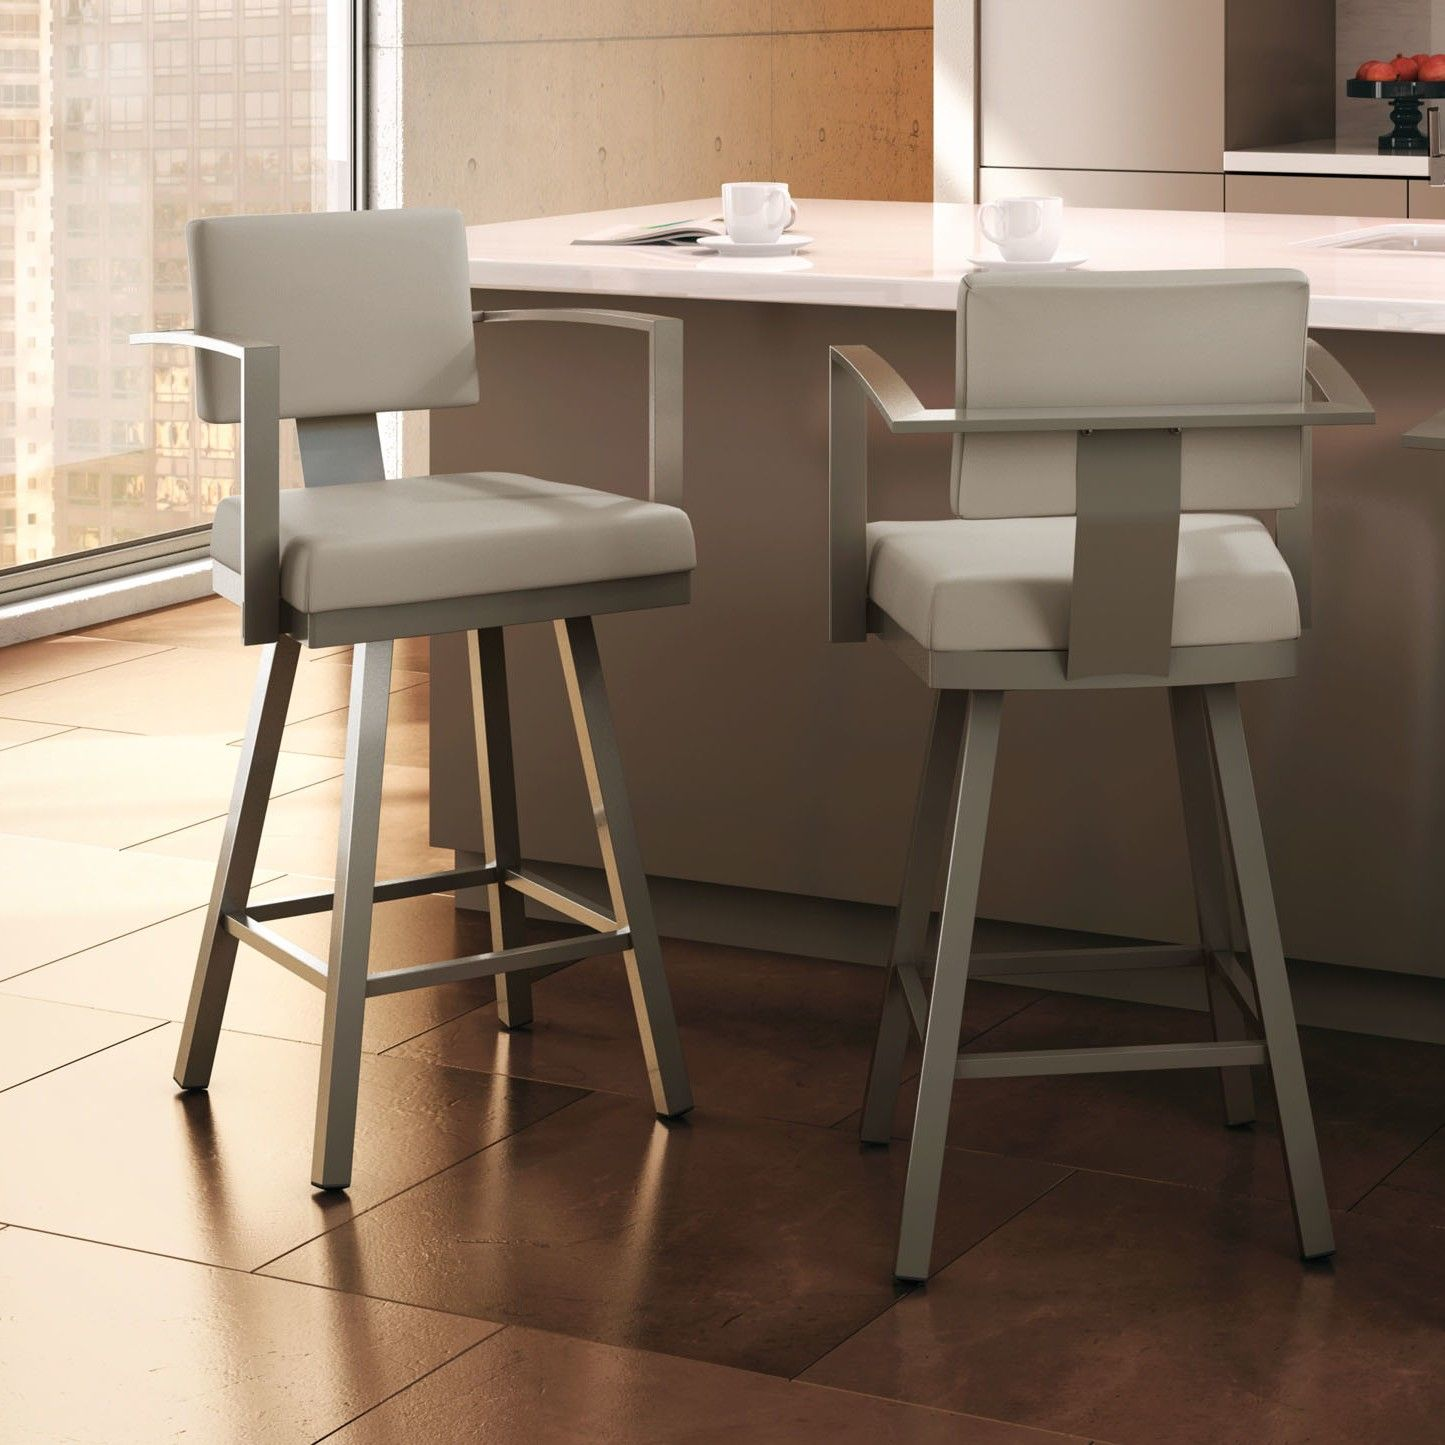 kitchen island chairs with backs white porcelain sink bar stools for inspiring high chair design